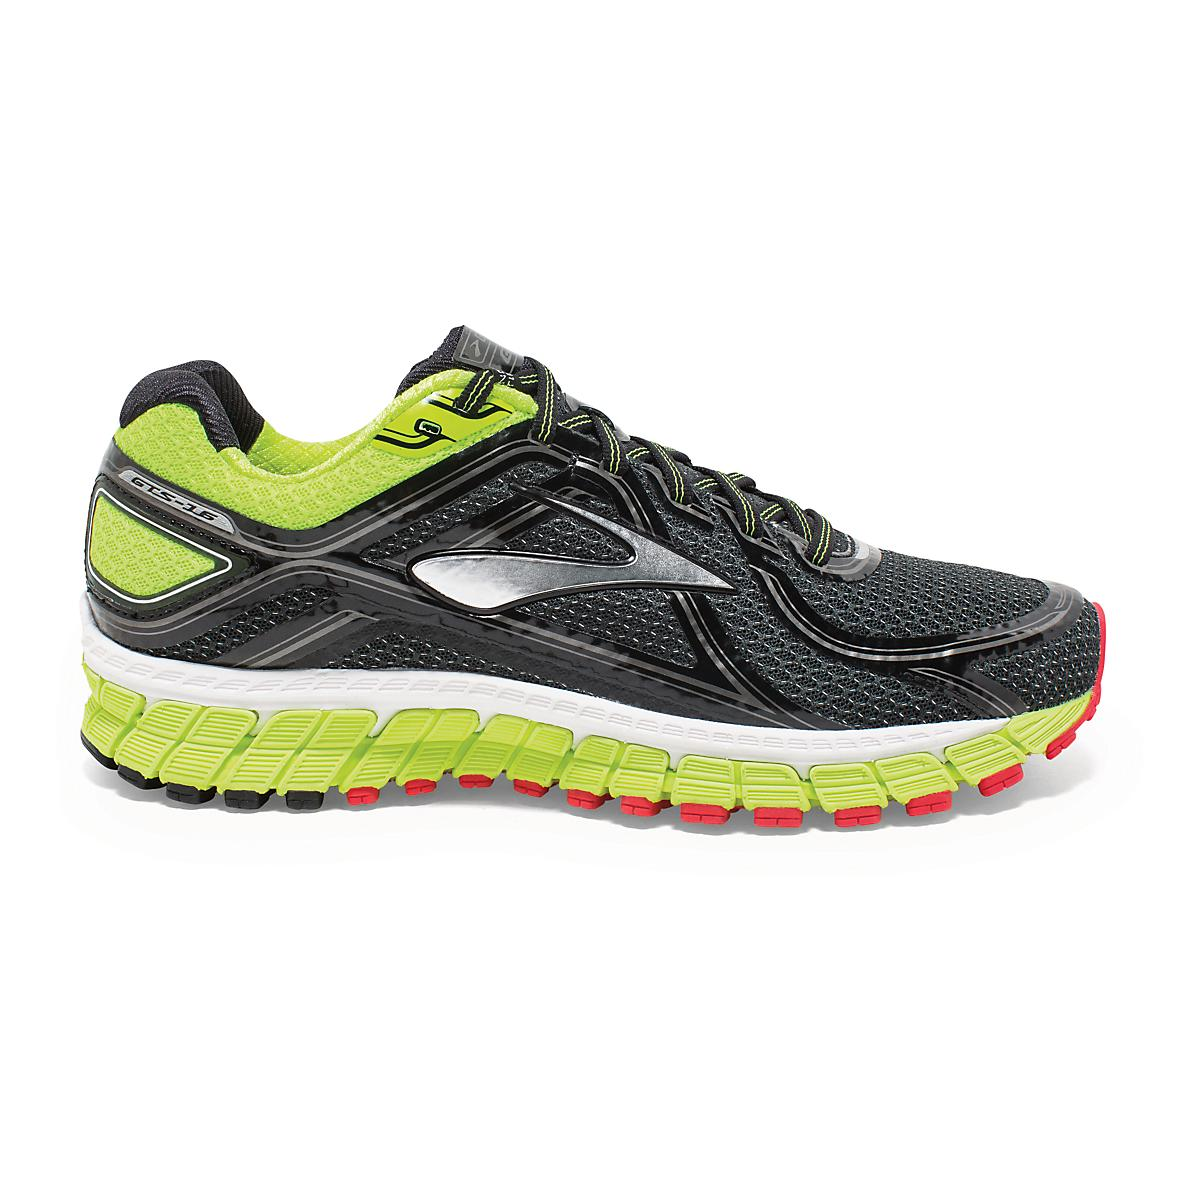 aa531906aa728 Mens Brooks Adrenaline GTS 16 Running Shoe at Road Runner Sports